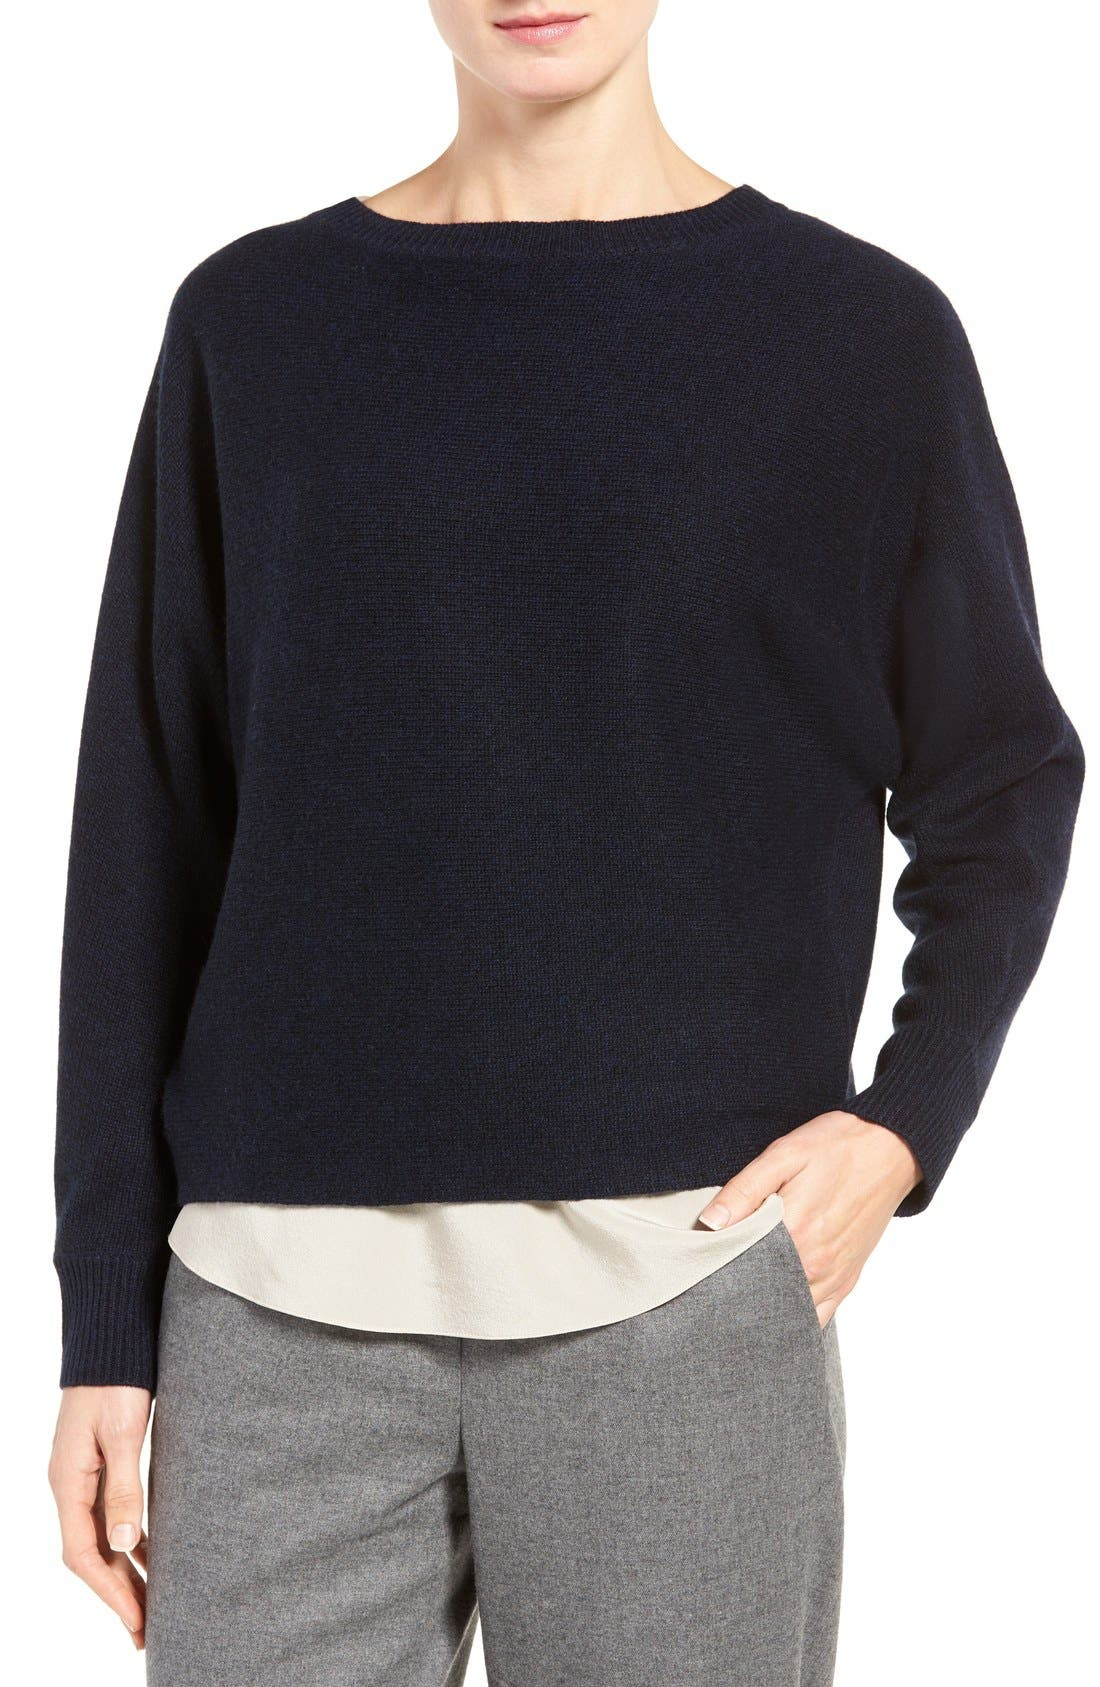 Alternate Image 1 Selected - Nordstrom Collection Cross Back Cashmere Sweater